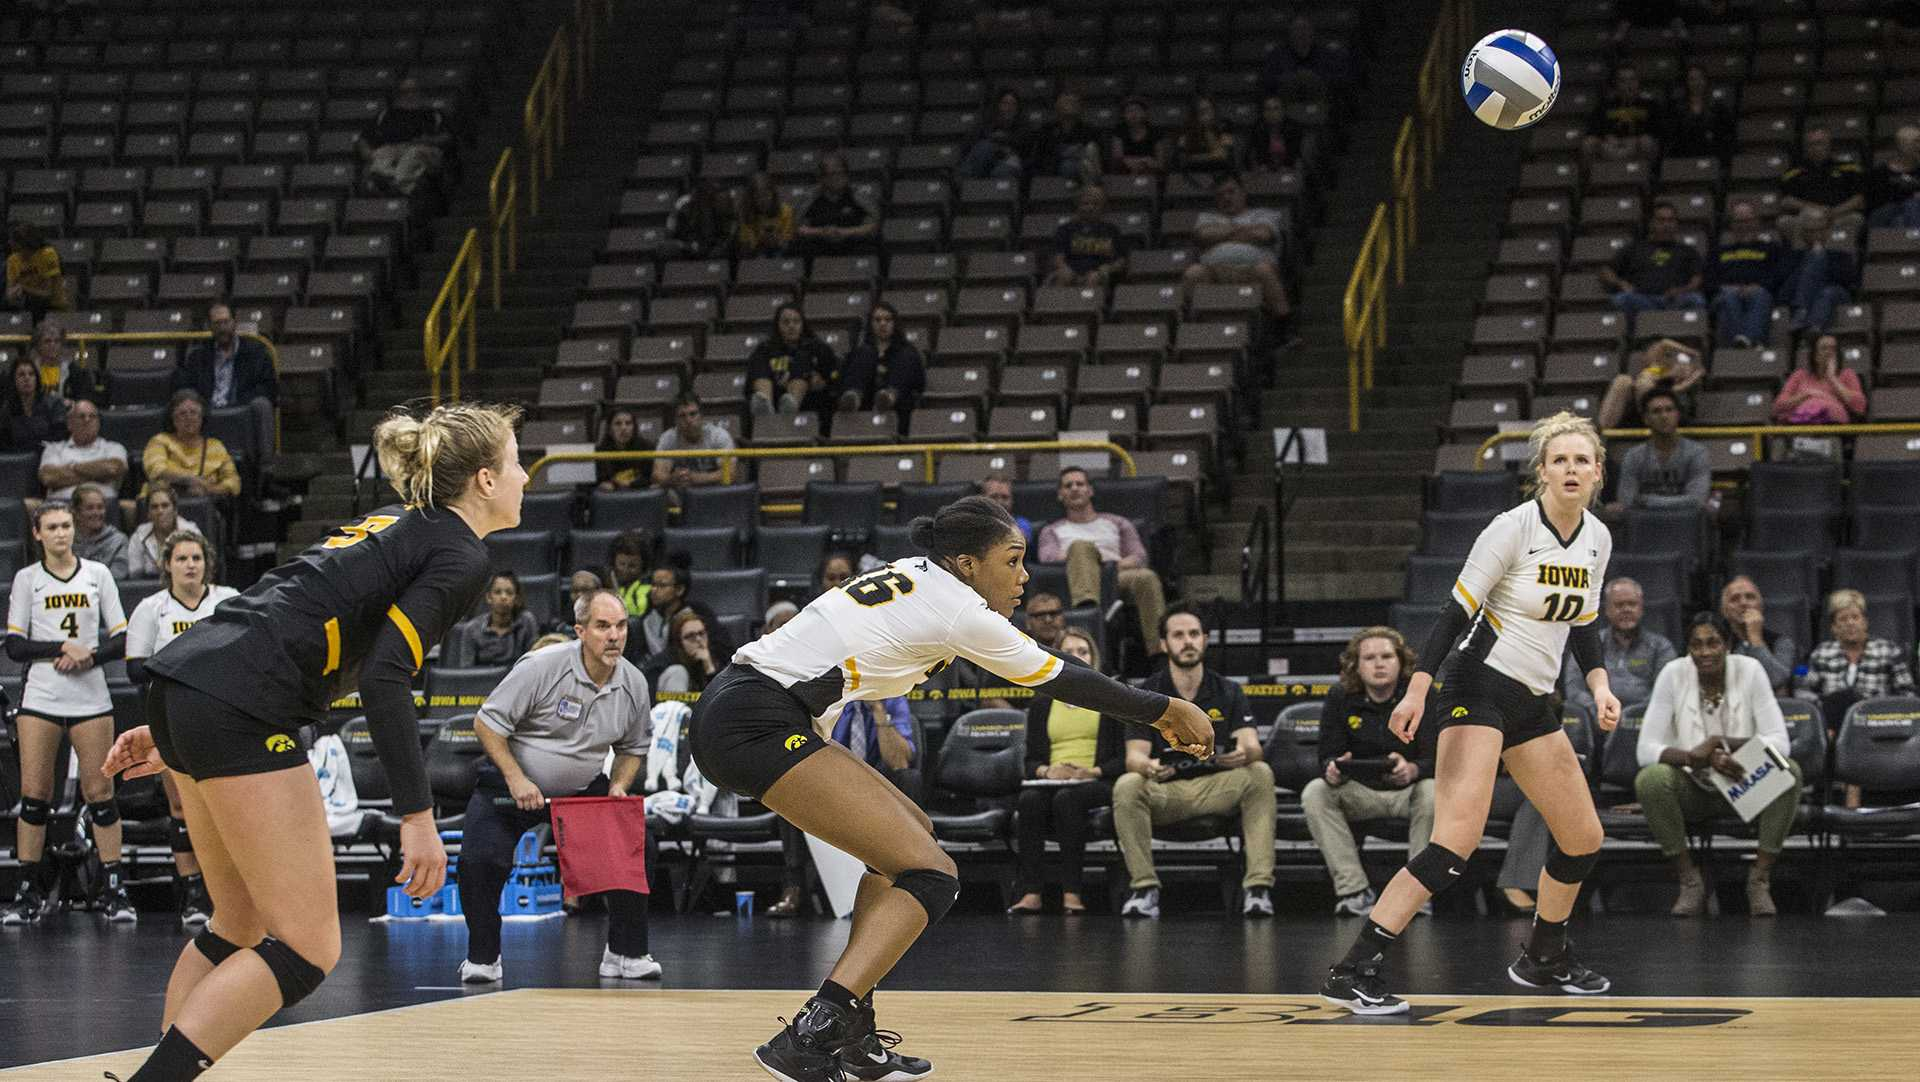 Iowa's Taylor Louis plays the ball during a volleyball match at Carver-Hawkeye Arena on Wednesday, Oct. 4, 2017. Iowa defeated Michigan 3 sets to 1. (Nick Rohlman/The Daily Iowan)